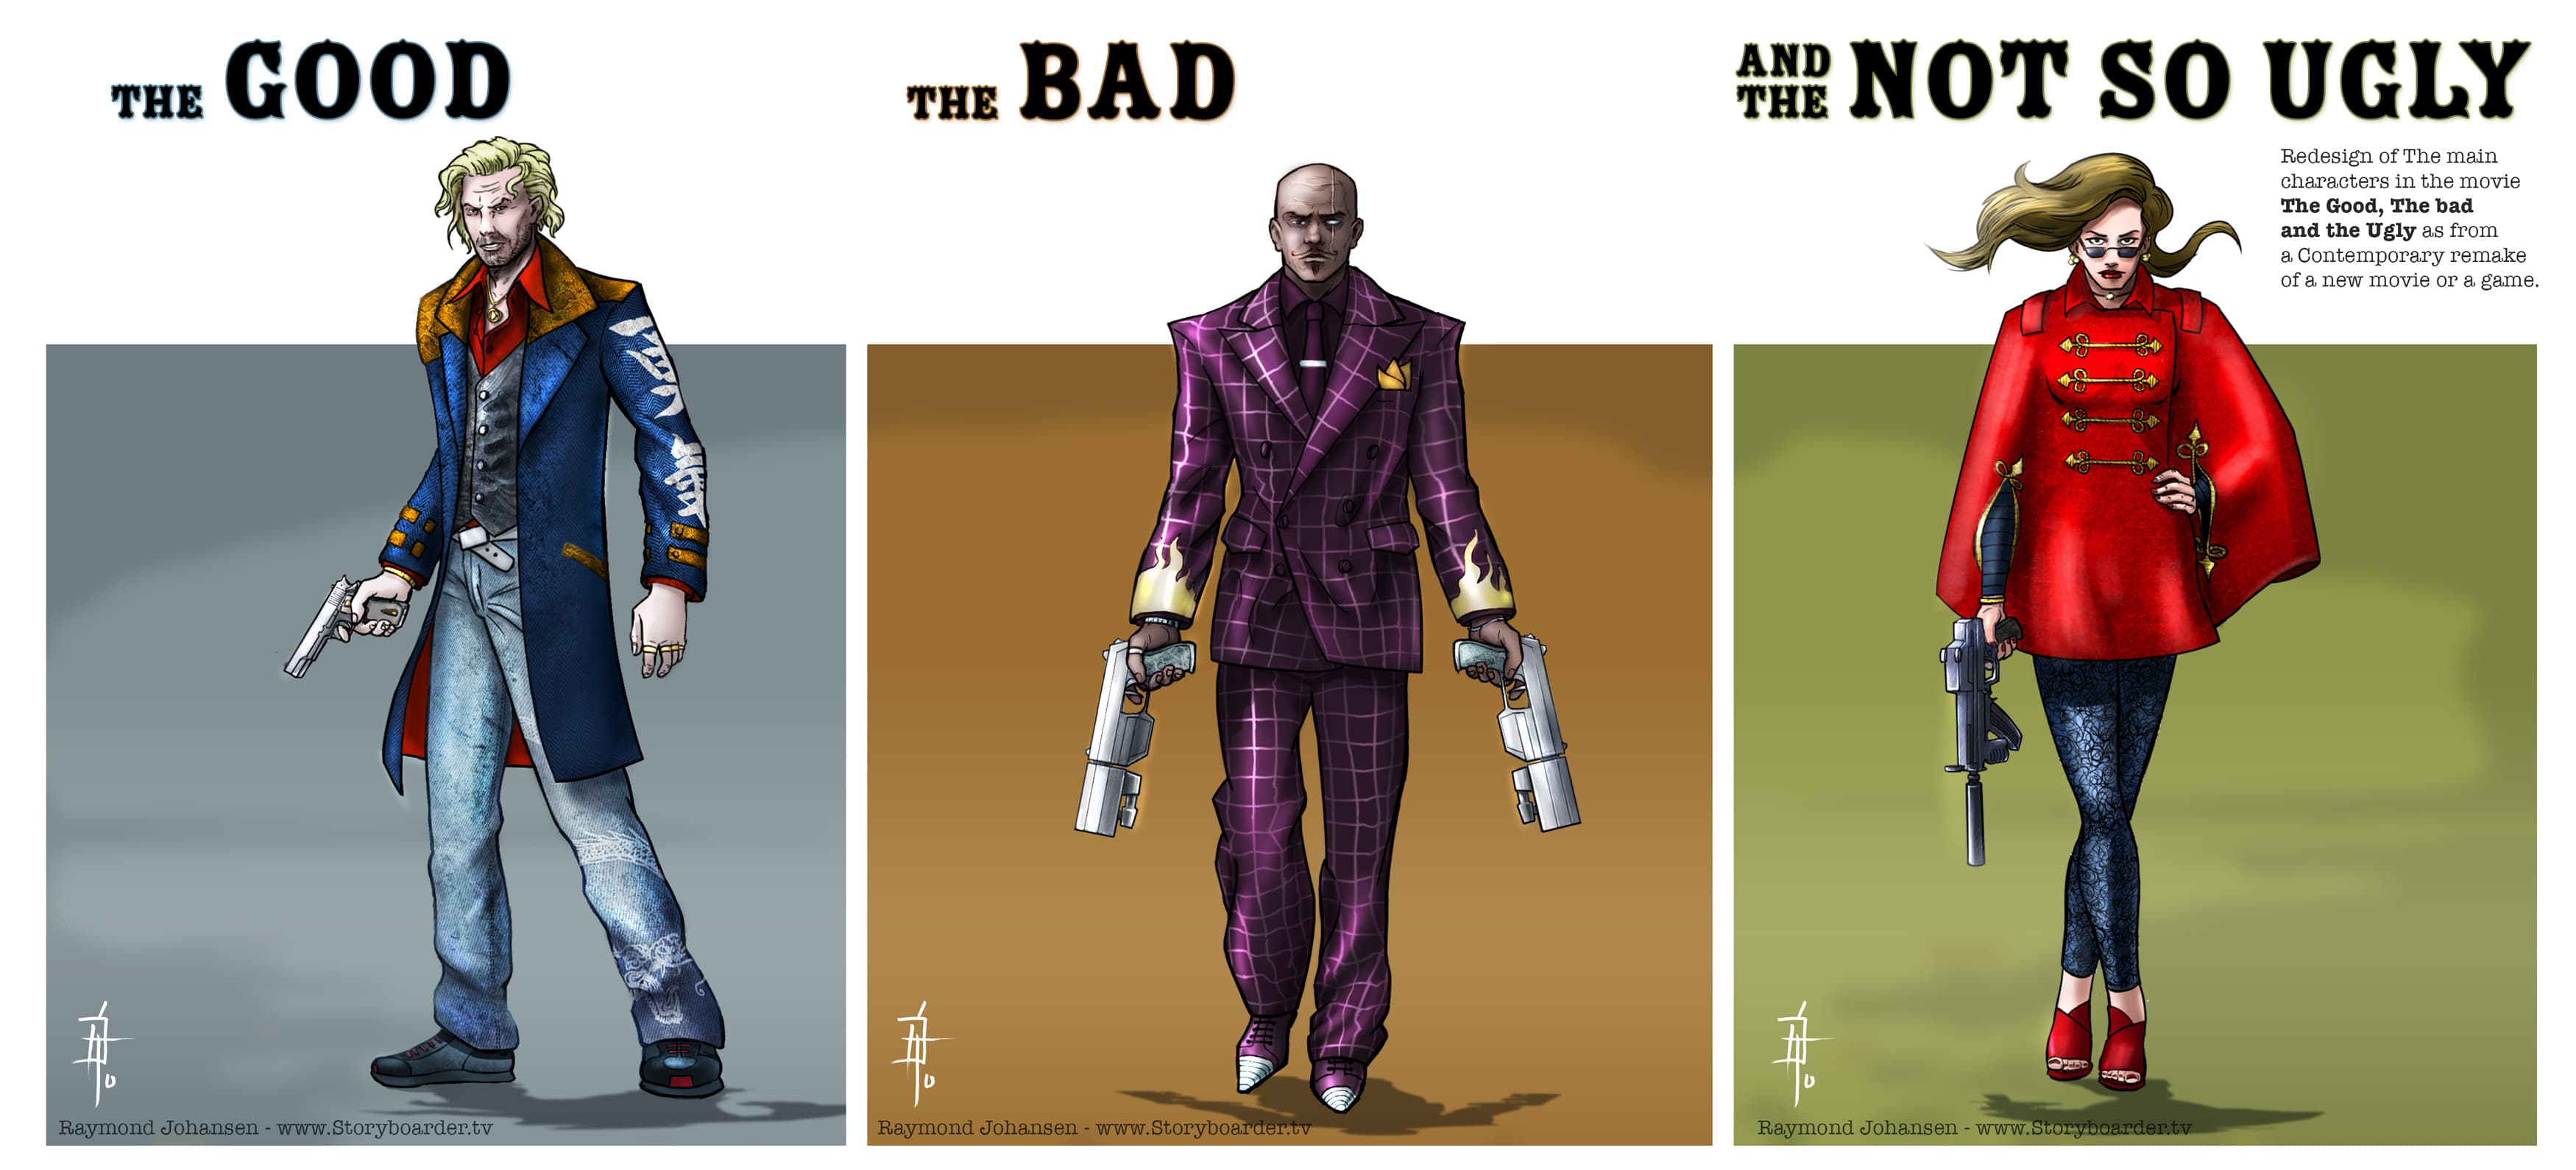 The good the bad and the ugly - characters for storyboard sketches.